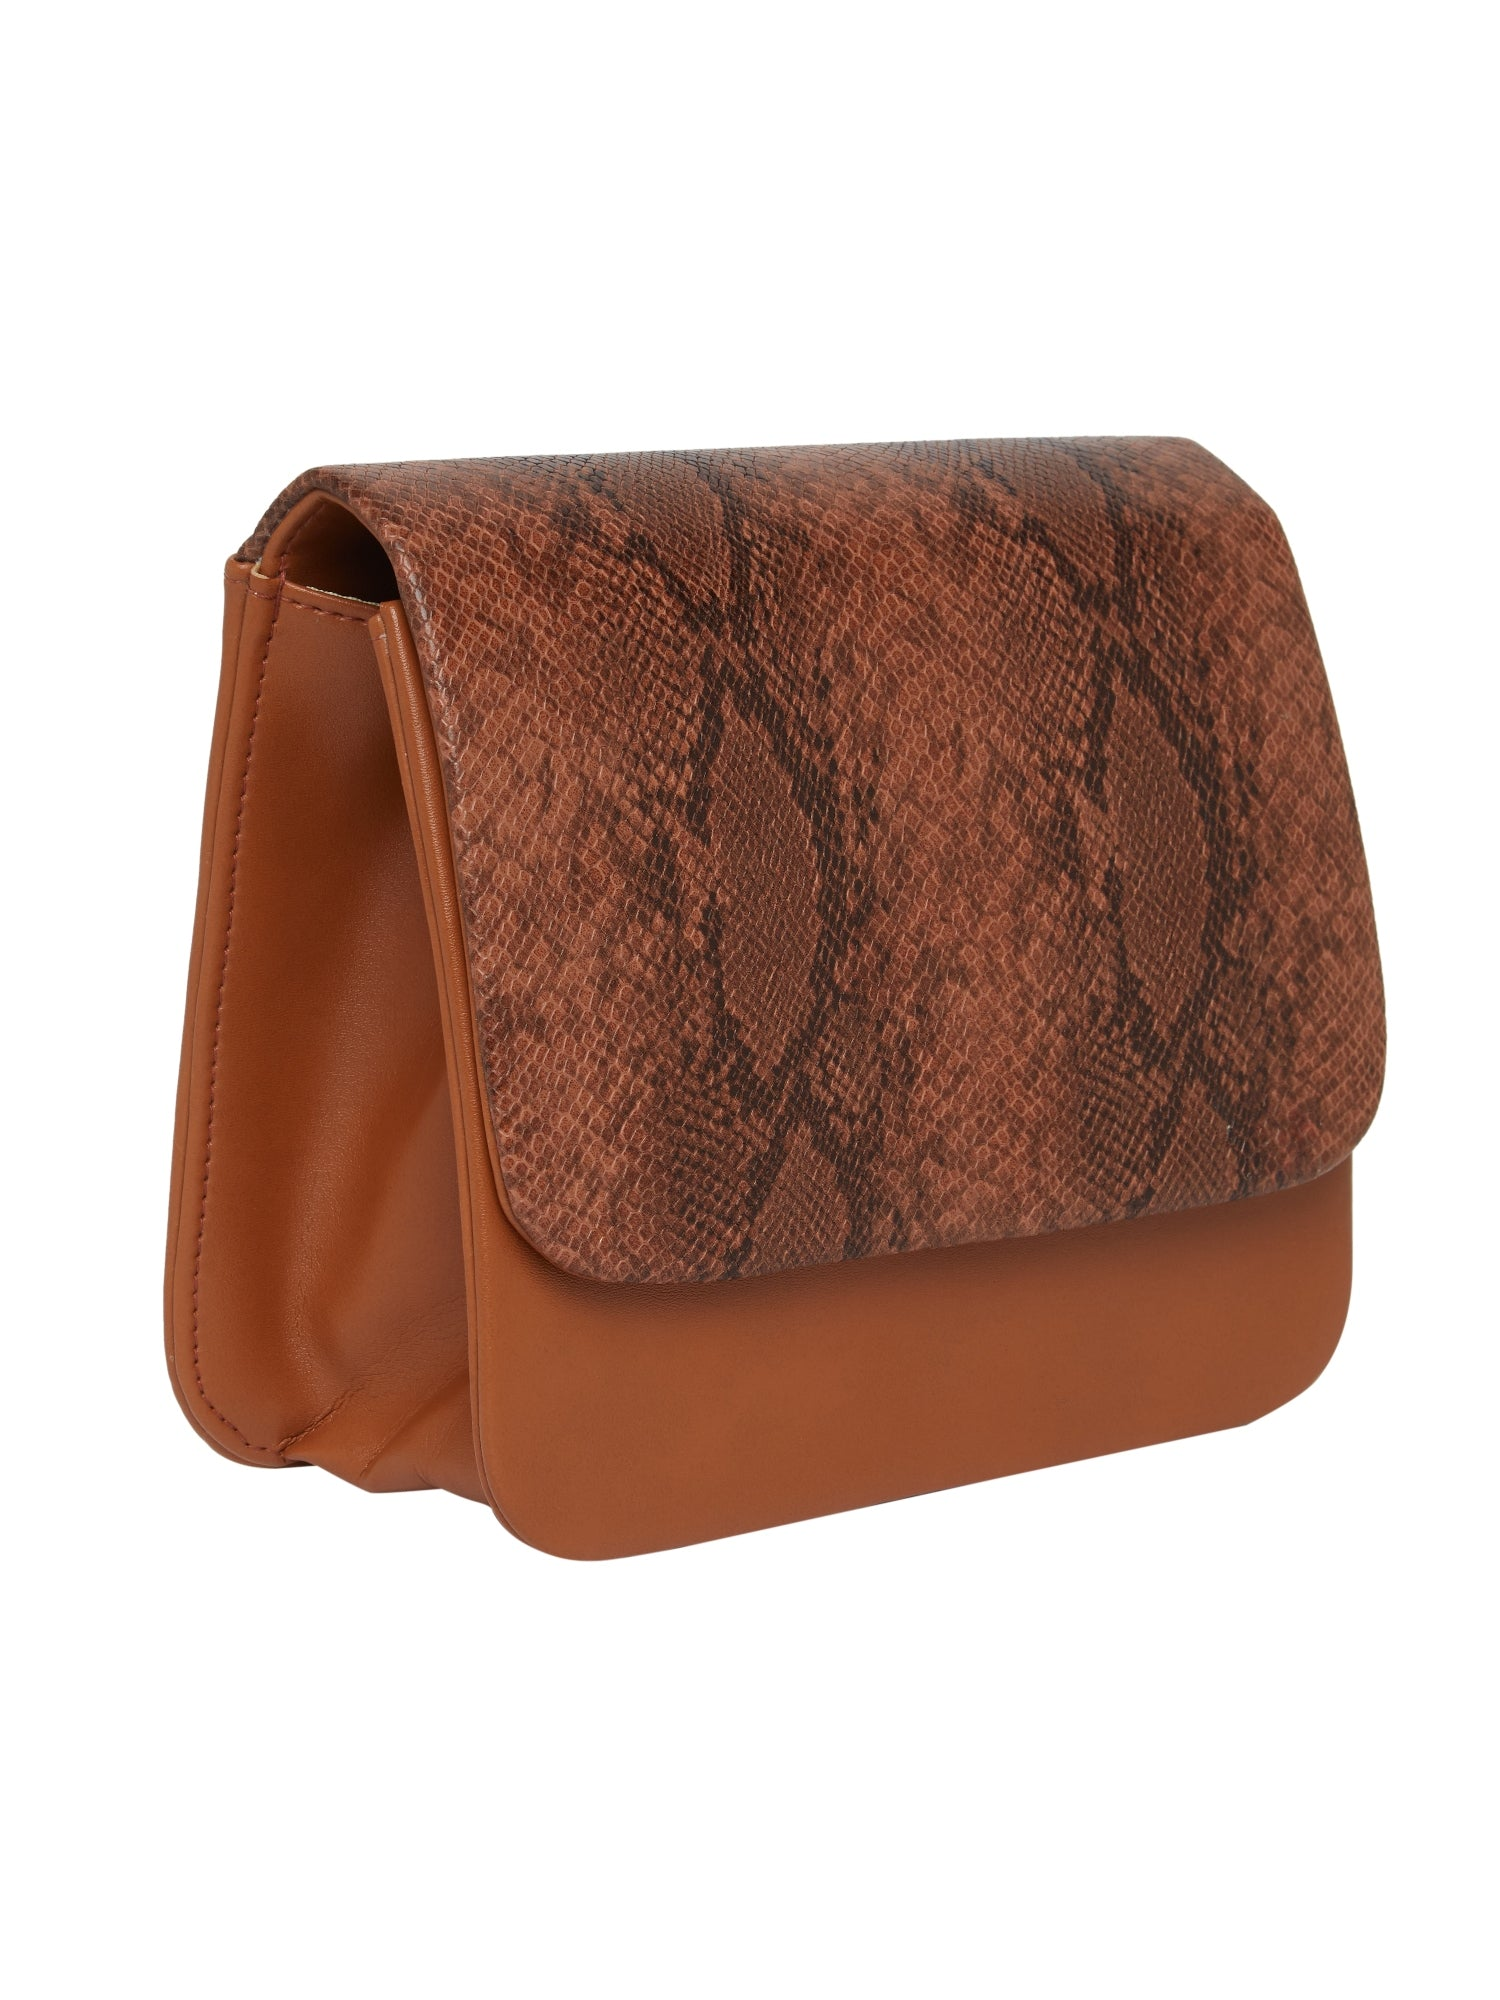 TARUSA Textured Brown Sling Bag